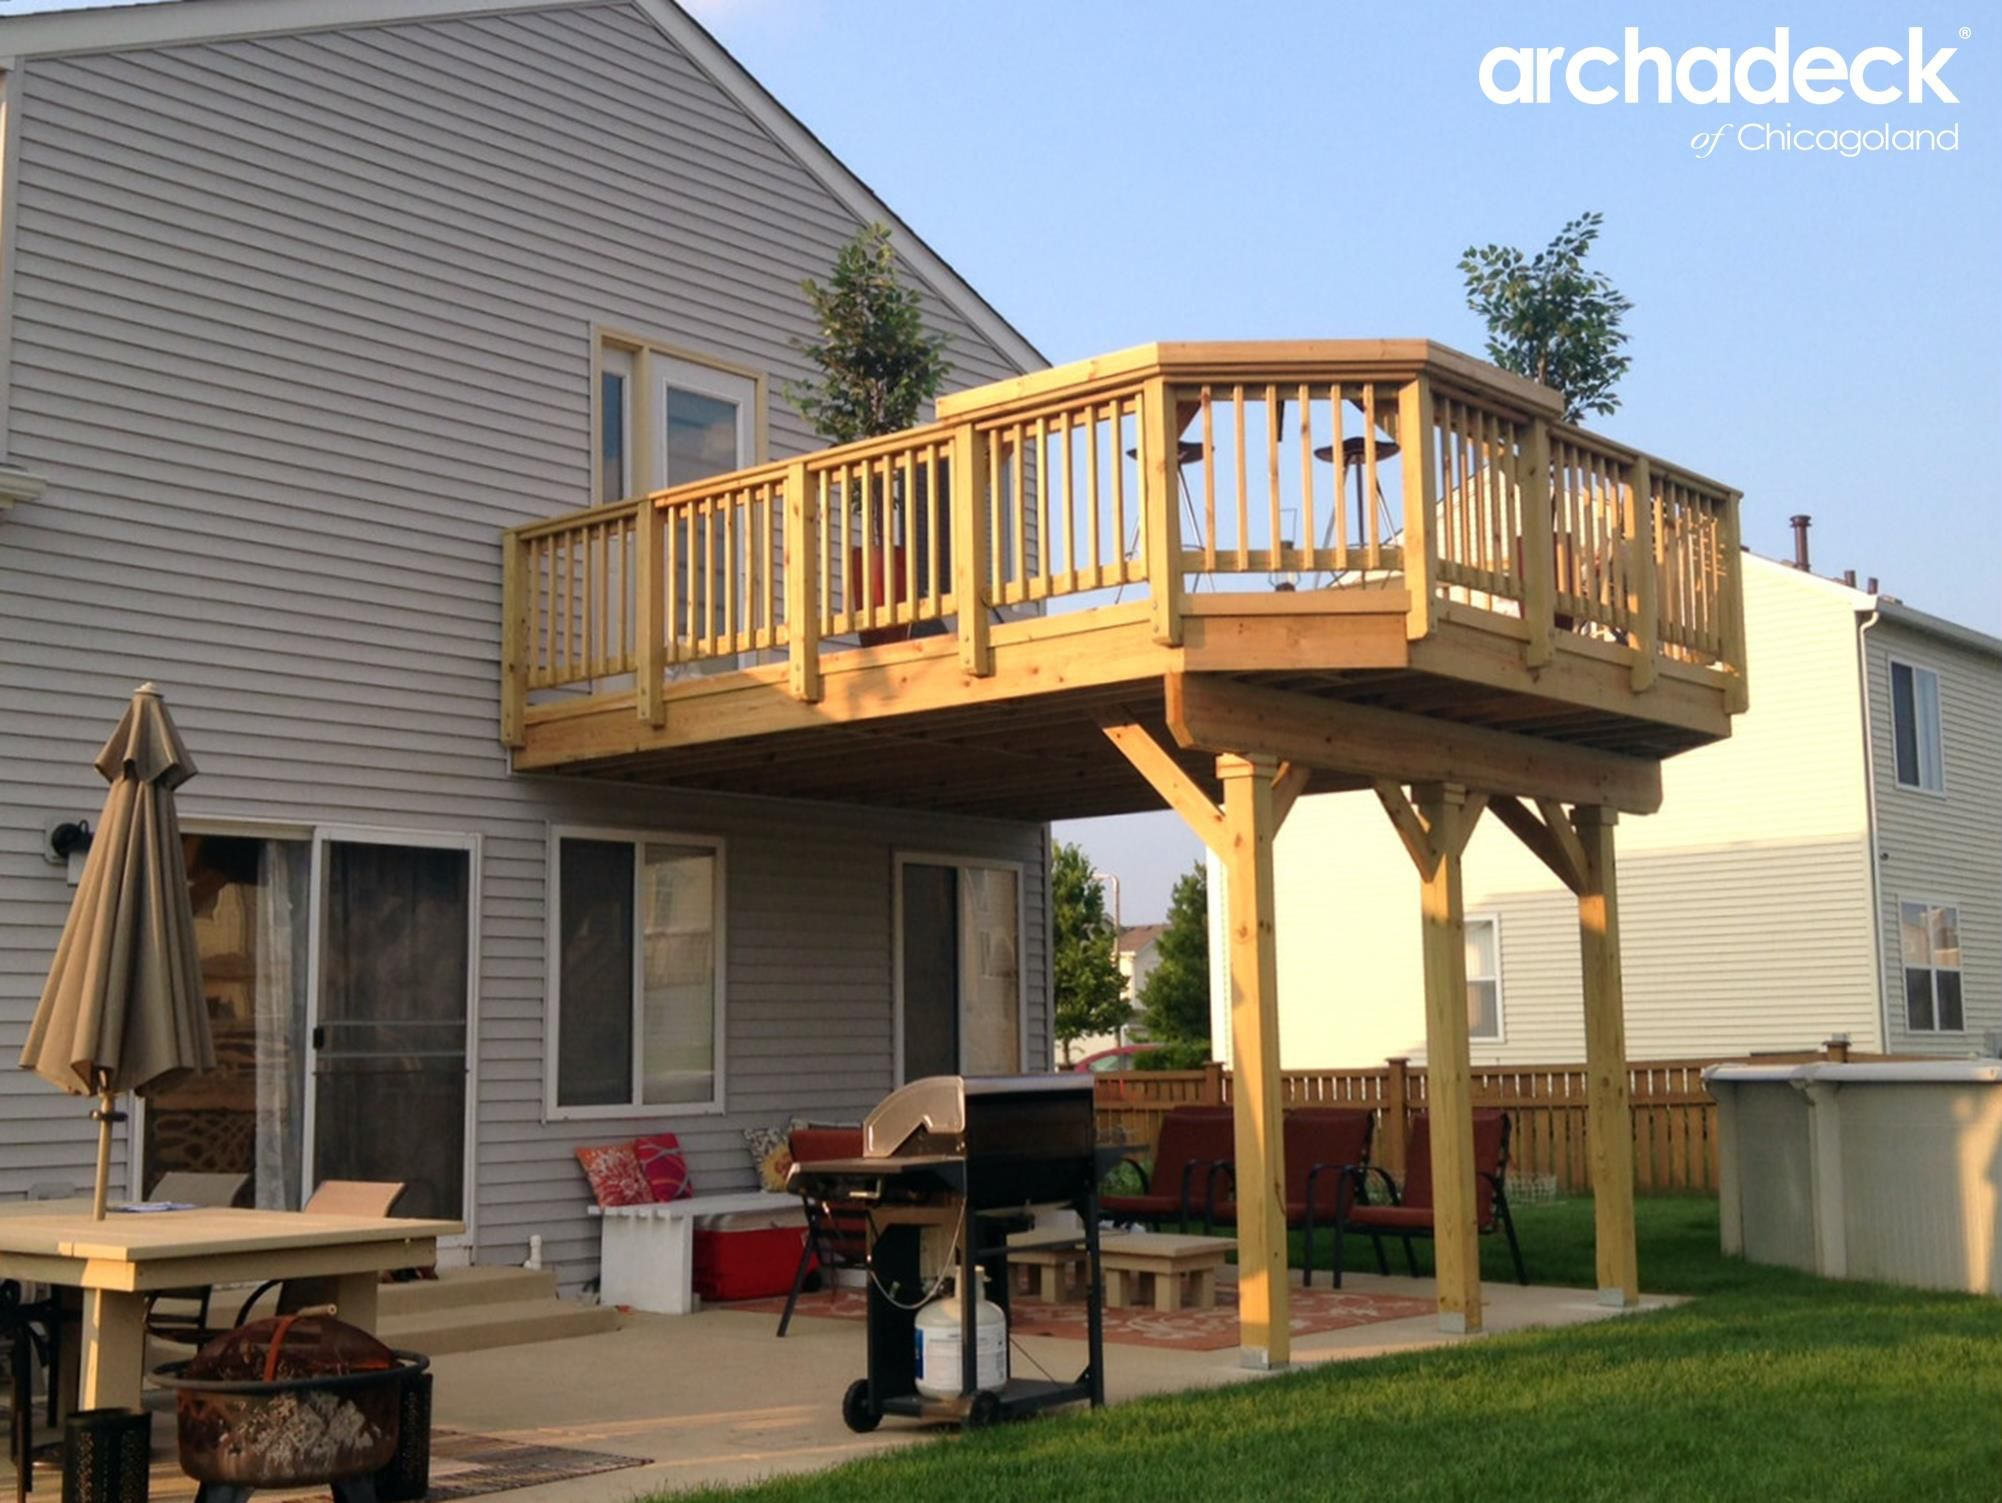 Attractive Wood Deck Over Patio By Aurora IL Deck Builder Archadeck Of Chicagoland